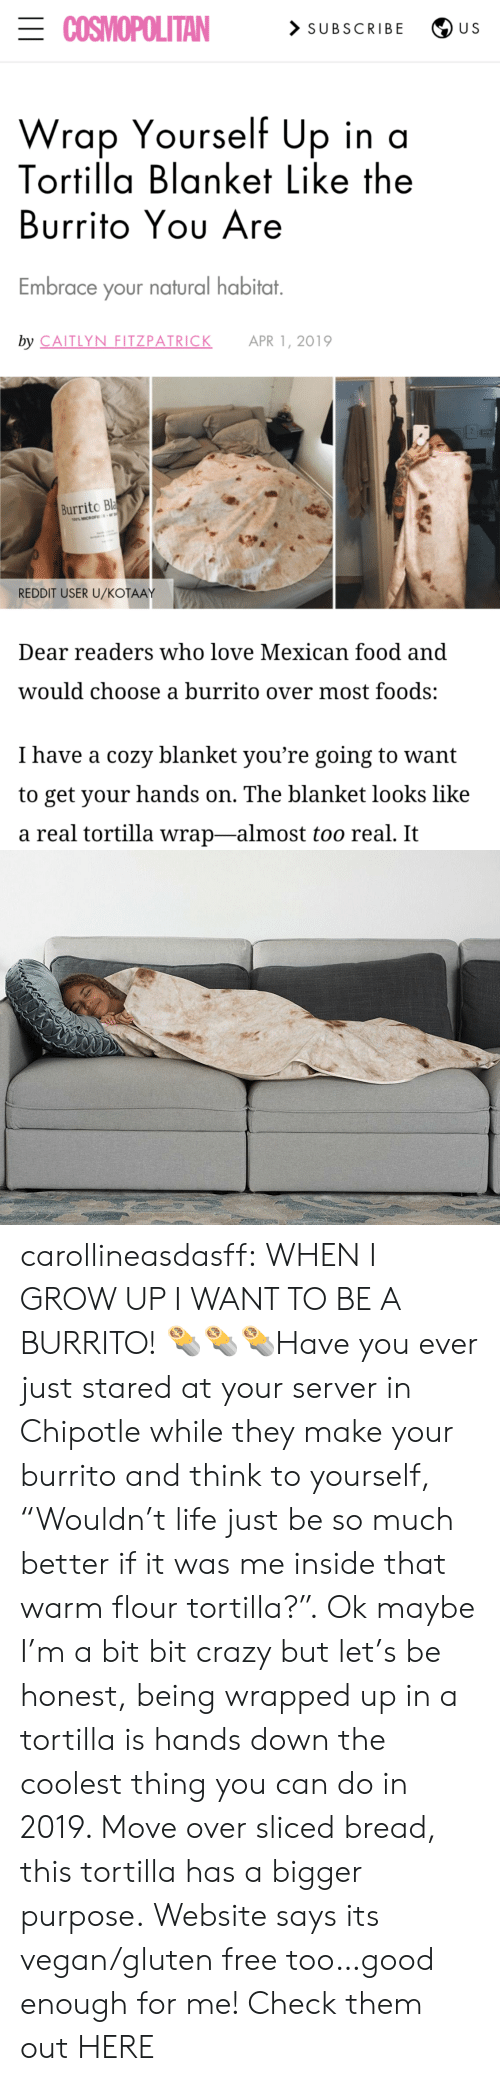 """Chipotle, Crazy, and Food: ECOSMOPOLITAN  > SUBSCRIBE  U S  Wrap Yourself Up in a  Tortilla Blanket Like the  Burrito Yου Are  Embrace your natural habitat.  by CAITLYN FITZPATRICK  APR 1, 2019  Burrito Bla  100% MICROFE  REDDIT USER U/KOŤAAY  Dear readers who love Mexican food and  would choose a burrito over most foods:  I have a cozy blanket you're going to want  to get your hands on. The blanket looks like  a real tortilla wrap-almost too real. It carollineasdasff: WHEN I GROW UP I WANT TO BE A BURRITO! 🌯🌯🌯Have you ever just stared at your server in Chipotle while they make your burrito and think to yourself, """"Wouldn't life just be so much better if it was me inside that warm flour tortilla?"""". Ok maybe I'm a bit bit crazy but let's be honest, being wrapped up in a tortilla is hands down the coolest thing you can do in 2019. Move over sliced bread, this tortilla has a bigger purpose. Website says its vegan/gluten free too…good enough for me! Check them out HERE"""